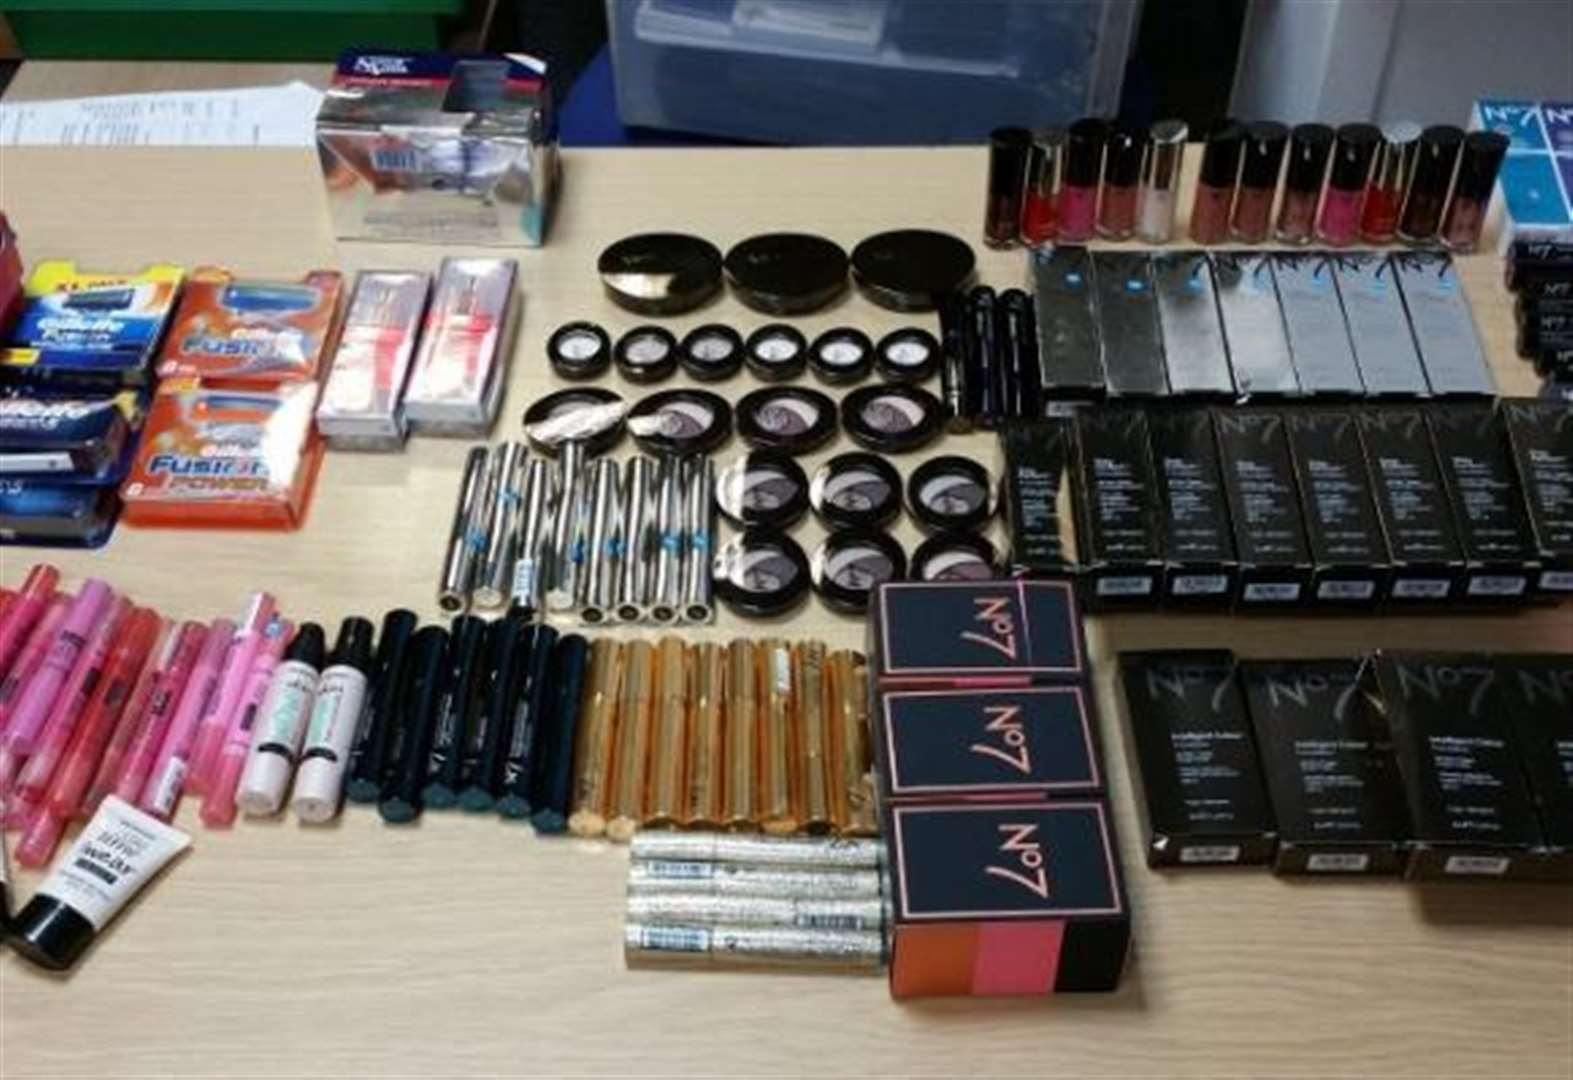 Suspected make-up thief arrested